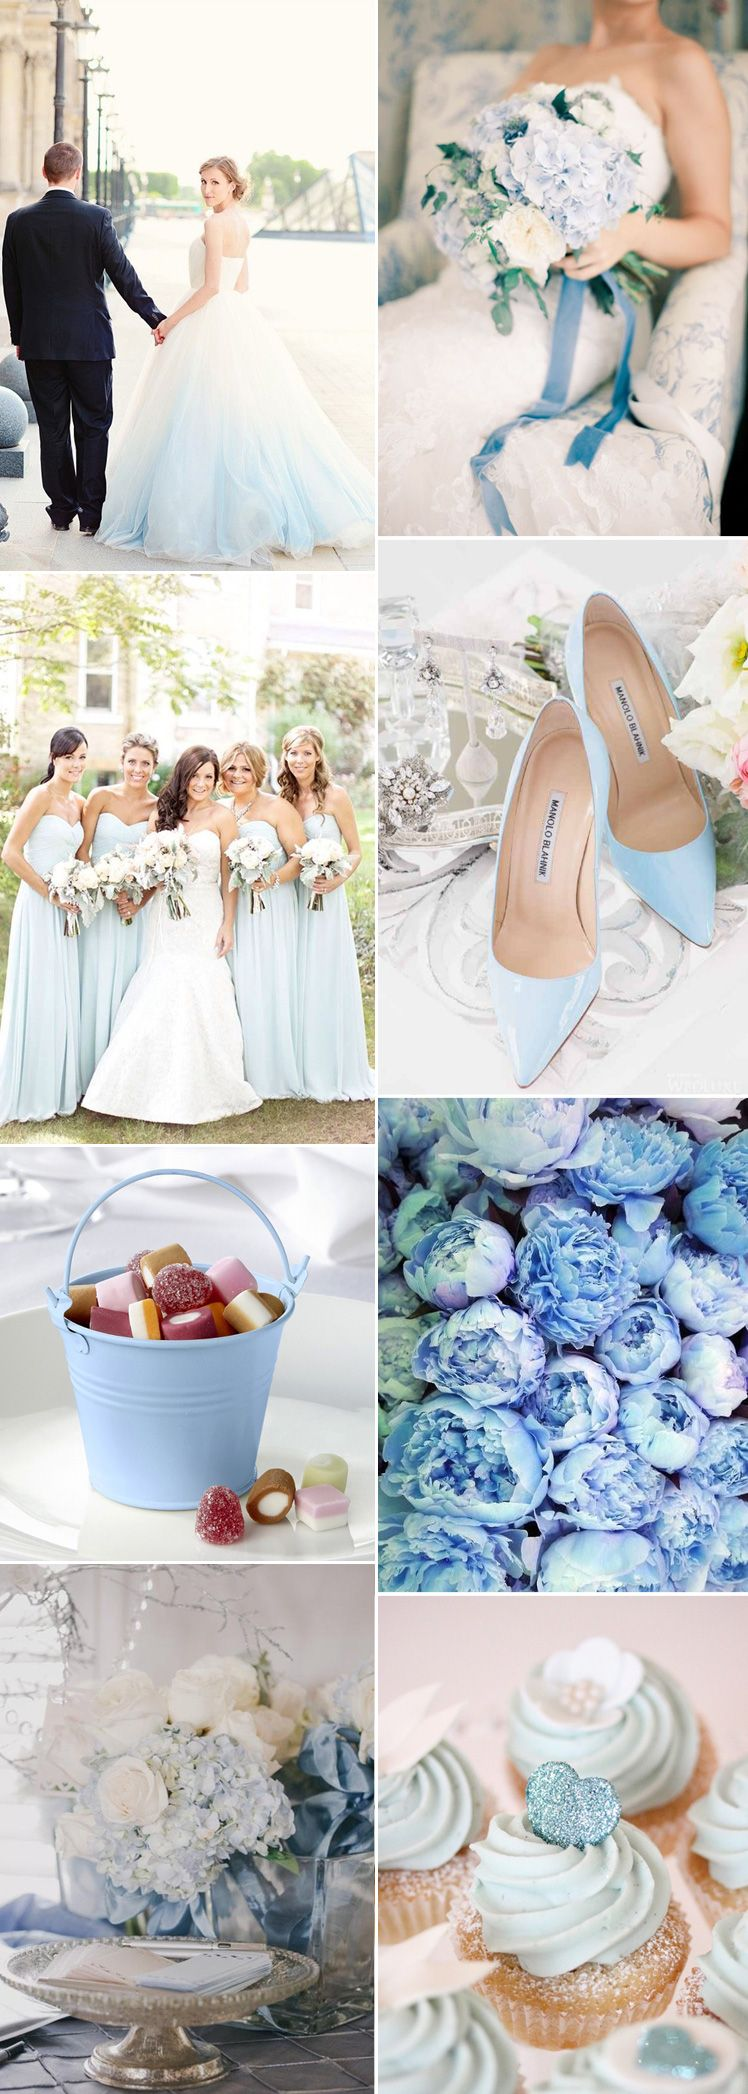 Beautiful Blue Wedding Ideas for your Big Day | Pinterest | Blue ...